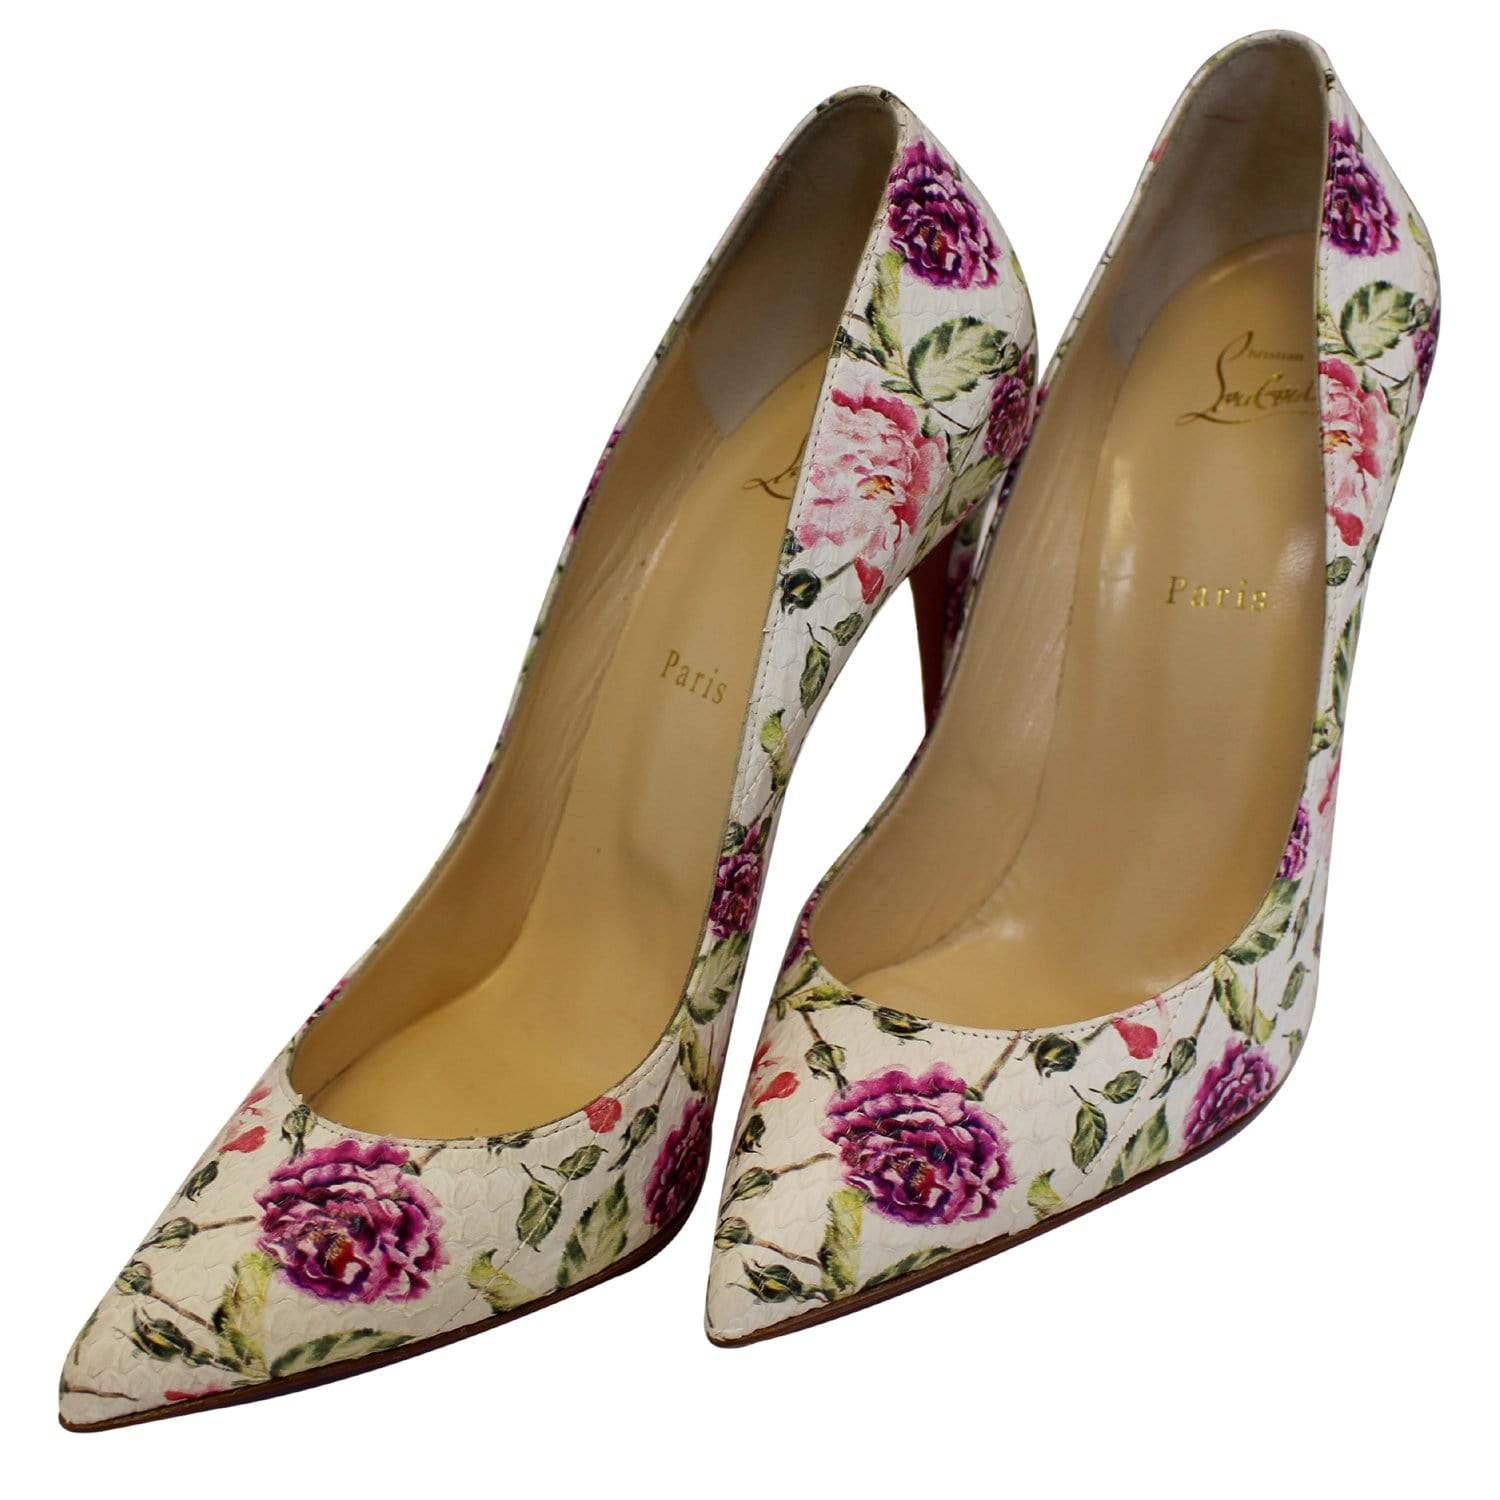 innovative design 657be 7aca4 CHRISTIAN LOUBOUTIN Pigalle Follies Watersnake Floral Pumps ...